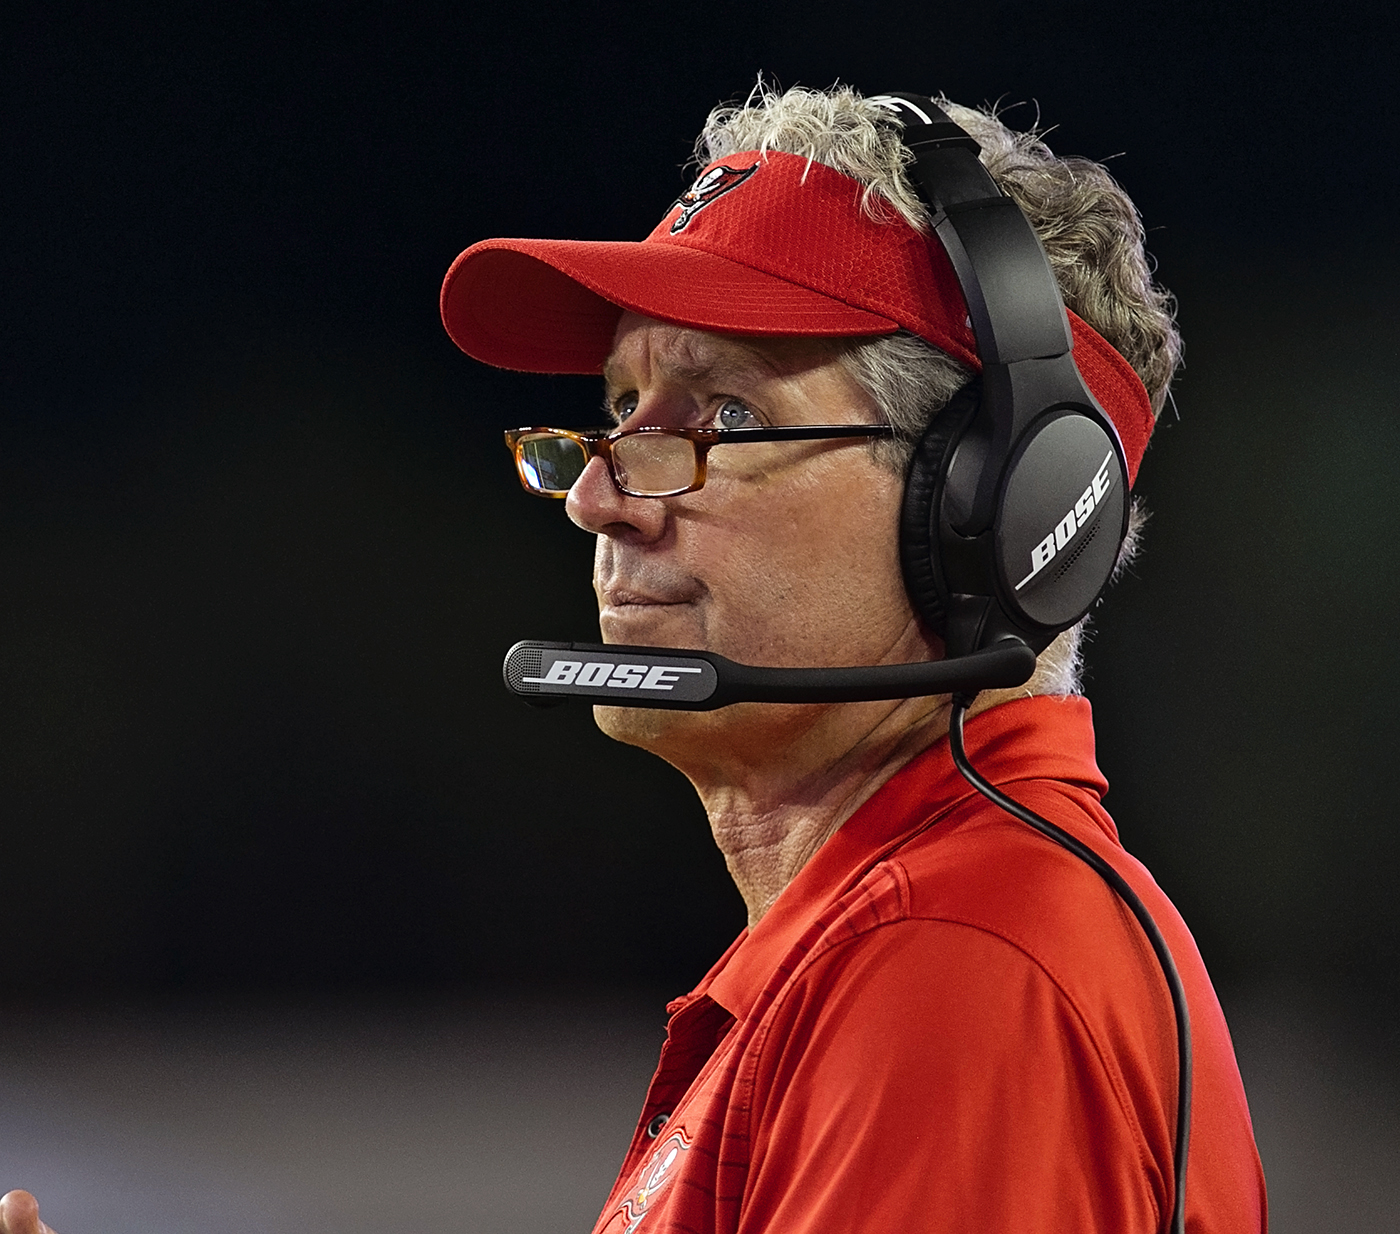 Koetter needs to have all the answers./CARMEN MANDATO